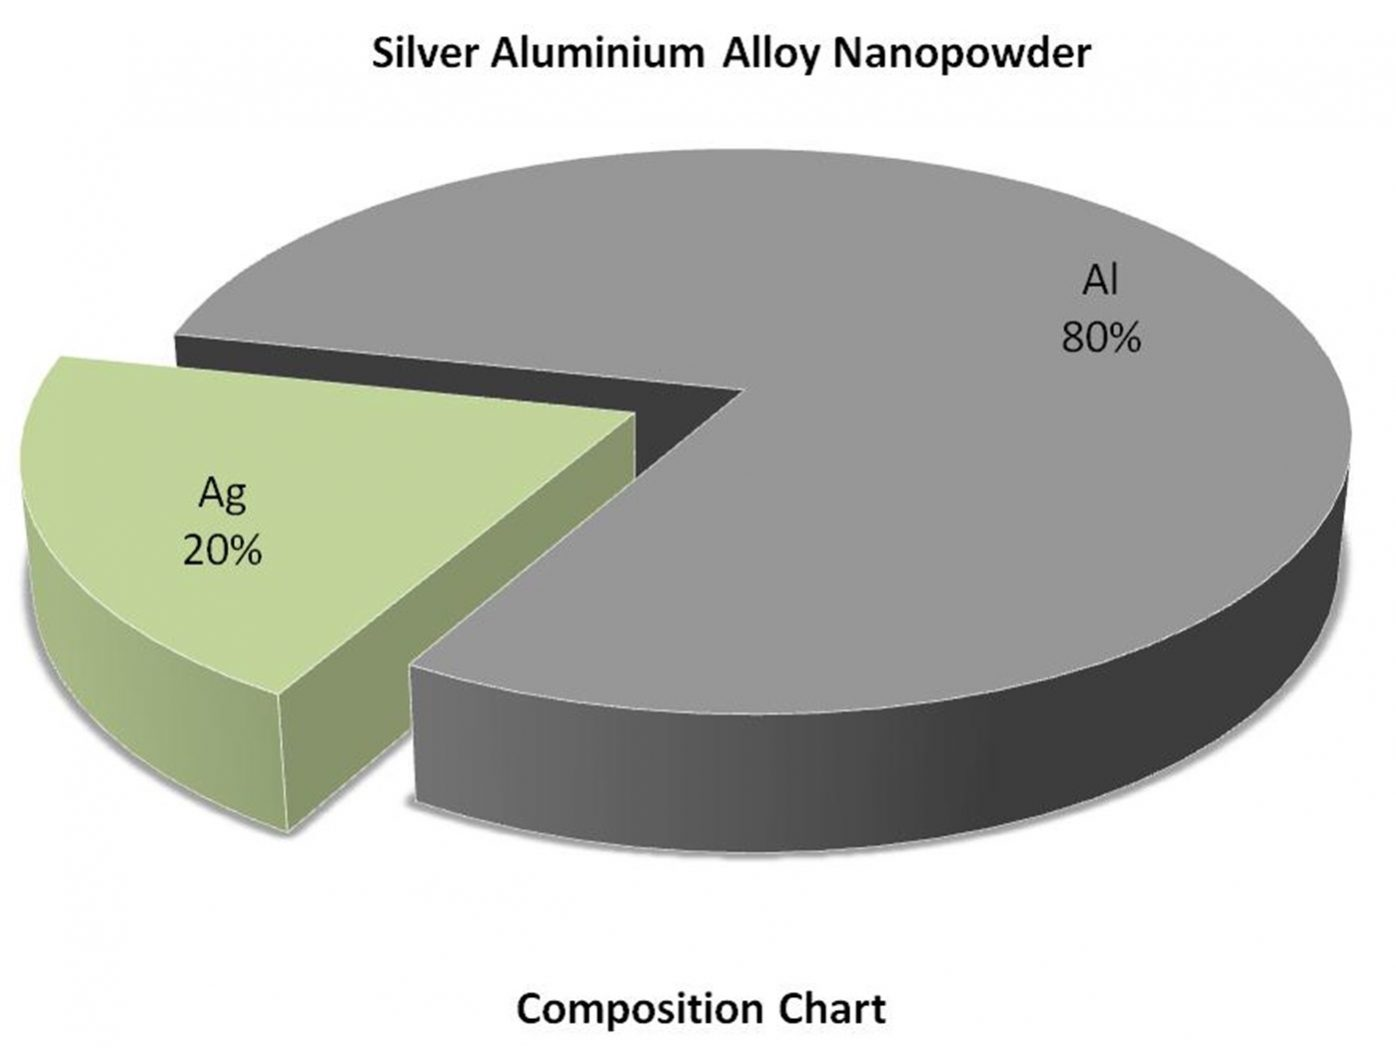 Composition chart - Silver Aluminium Alloy Nanoparticles